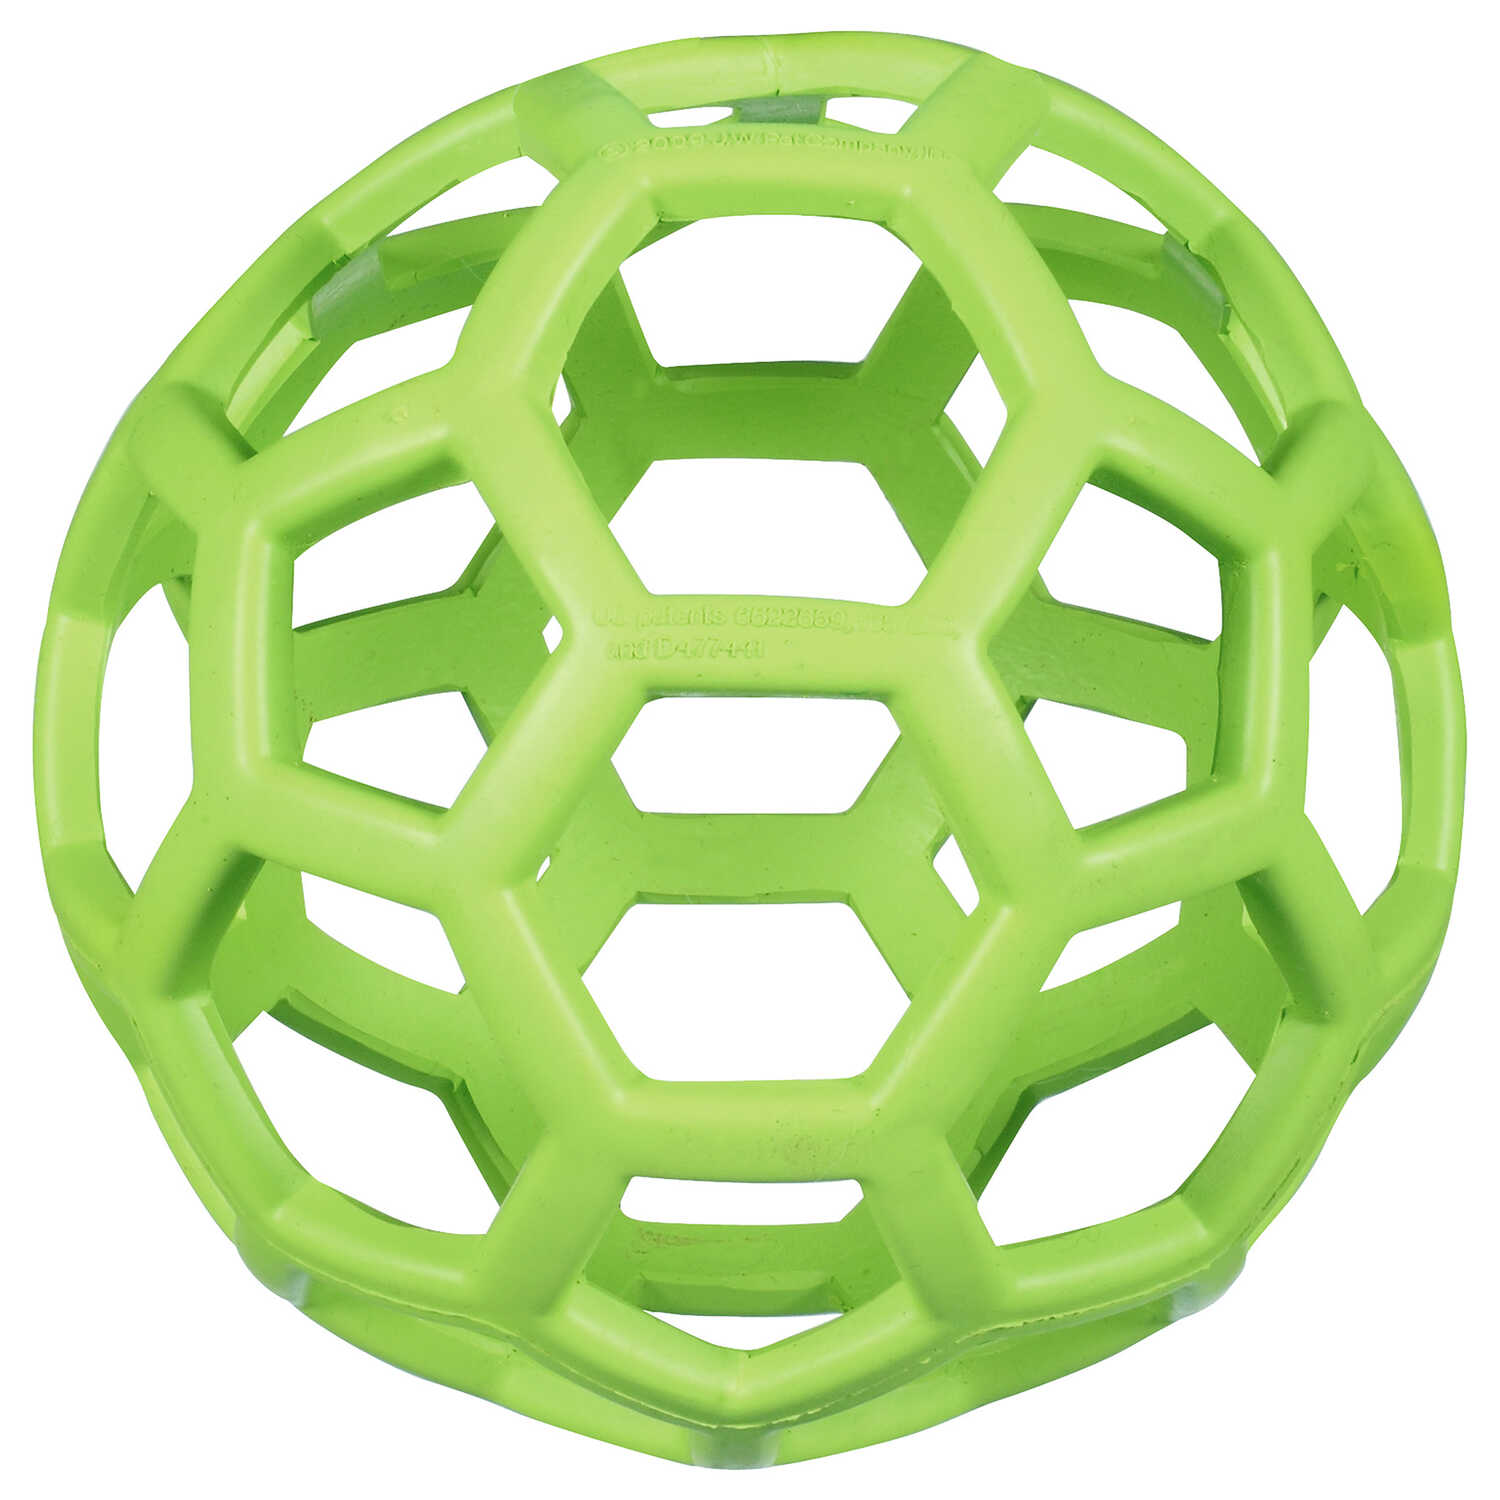 JW Pet  Hol-ee Roller  Green  Hol-ee Roller Ball  Rubber  Treat Holding Toy  Large